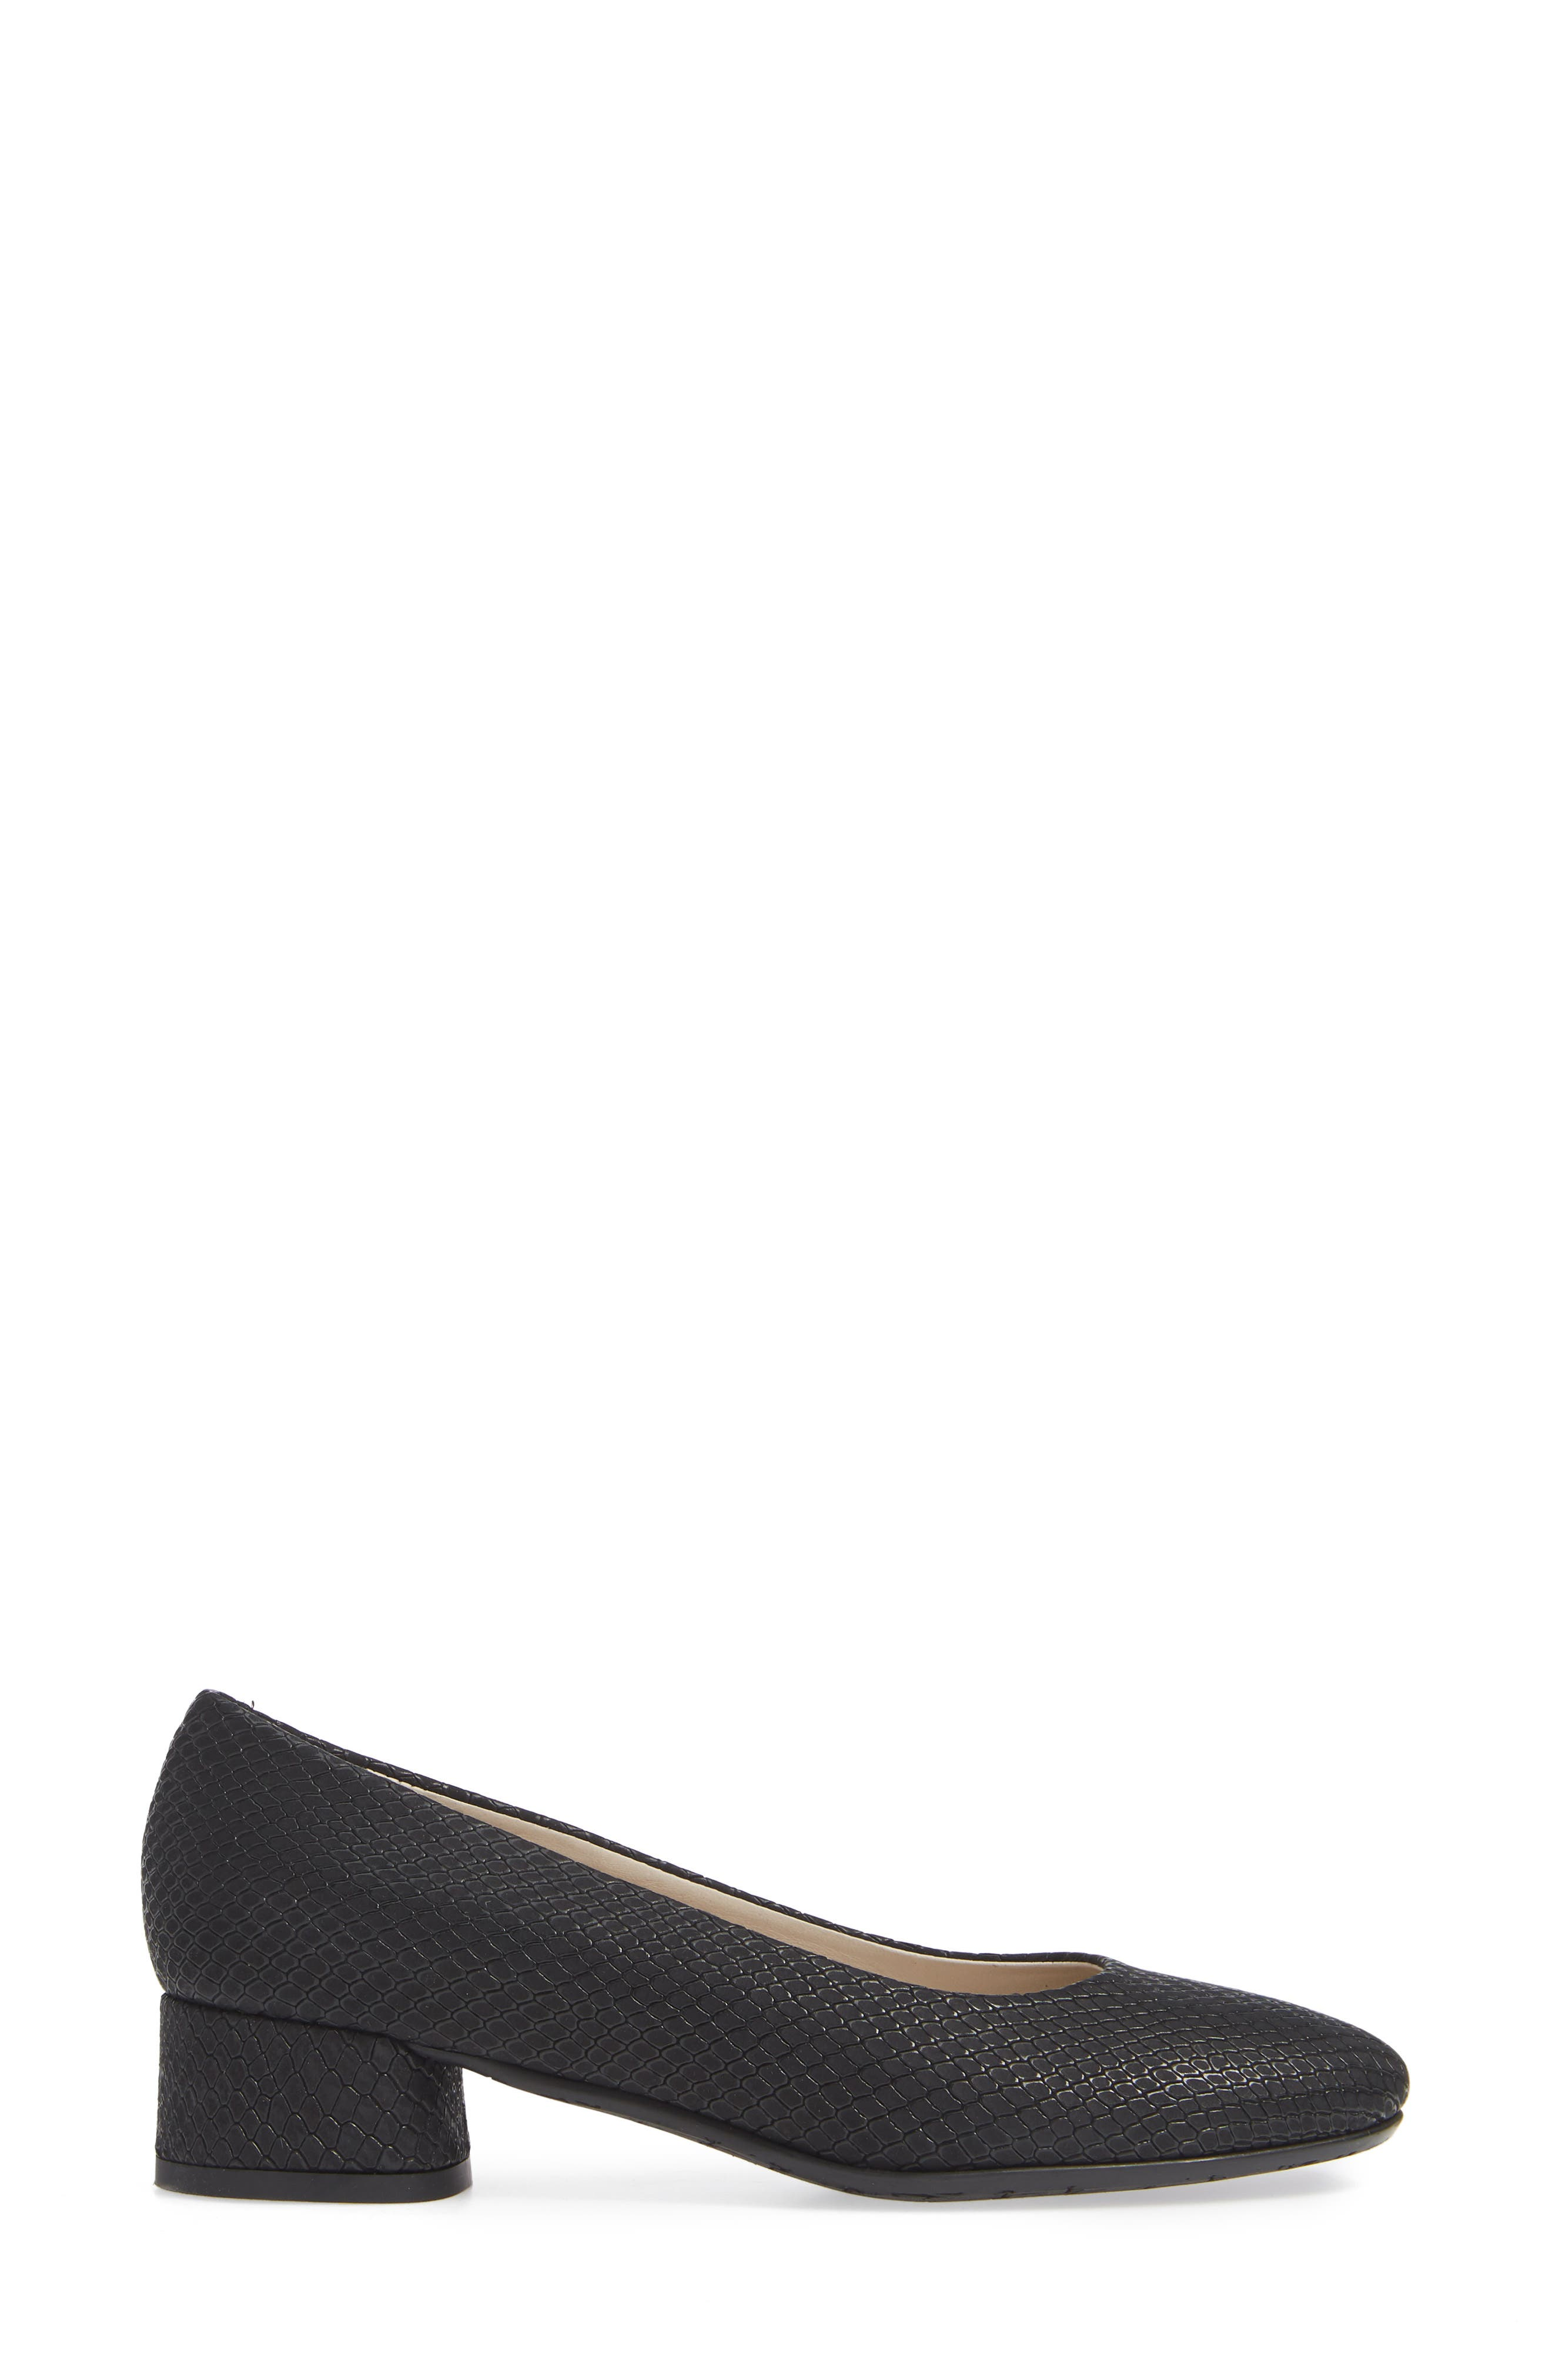 AMALFI BY RANGONI, Record Pump, Alternate thumbnail 3, color, BLACK OXIDE SUEDE